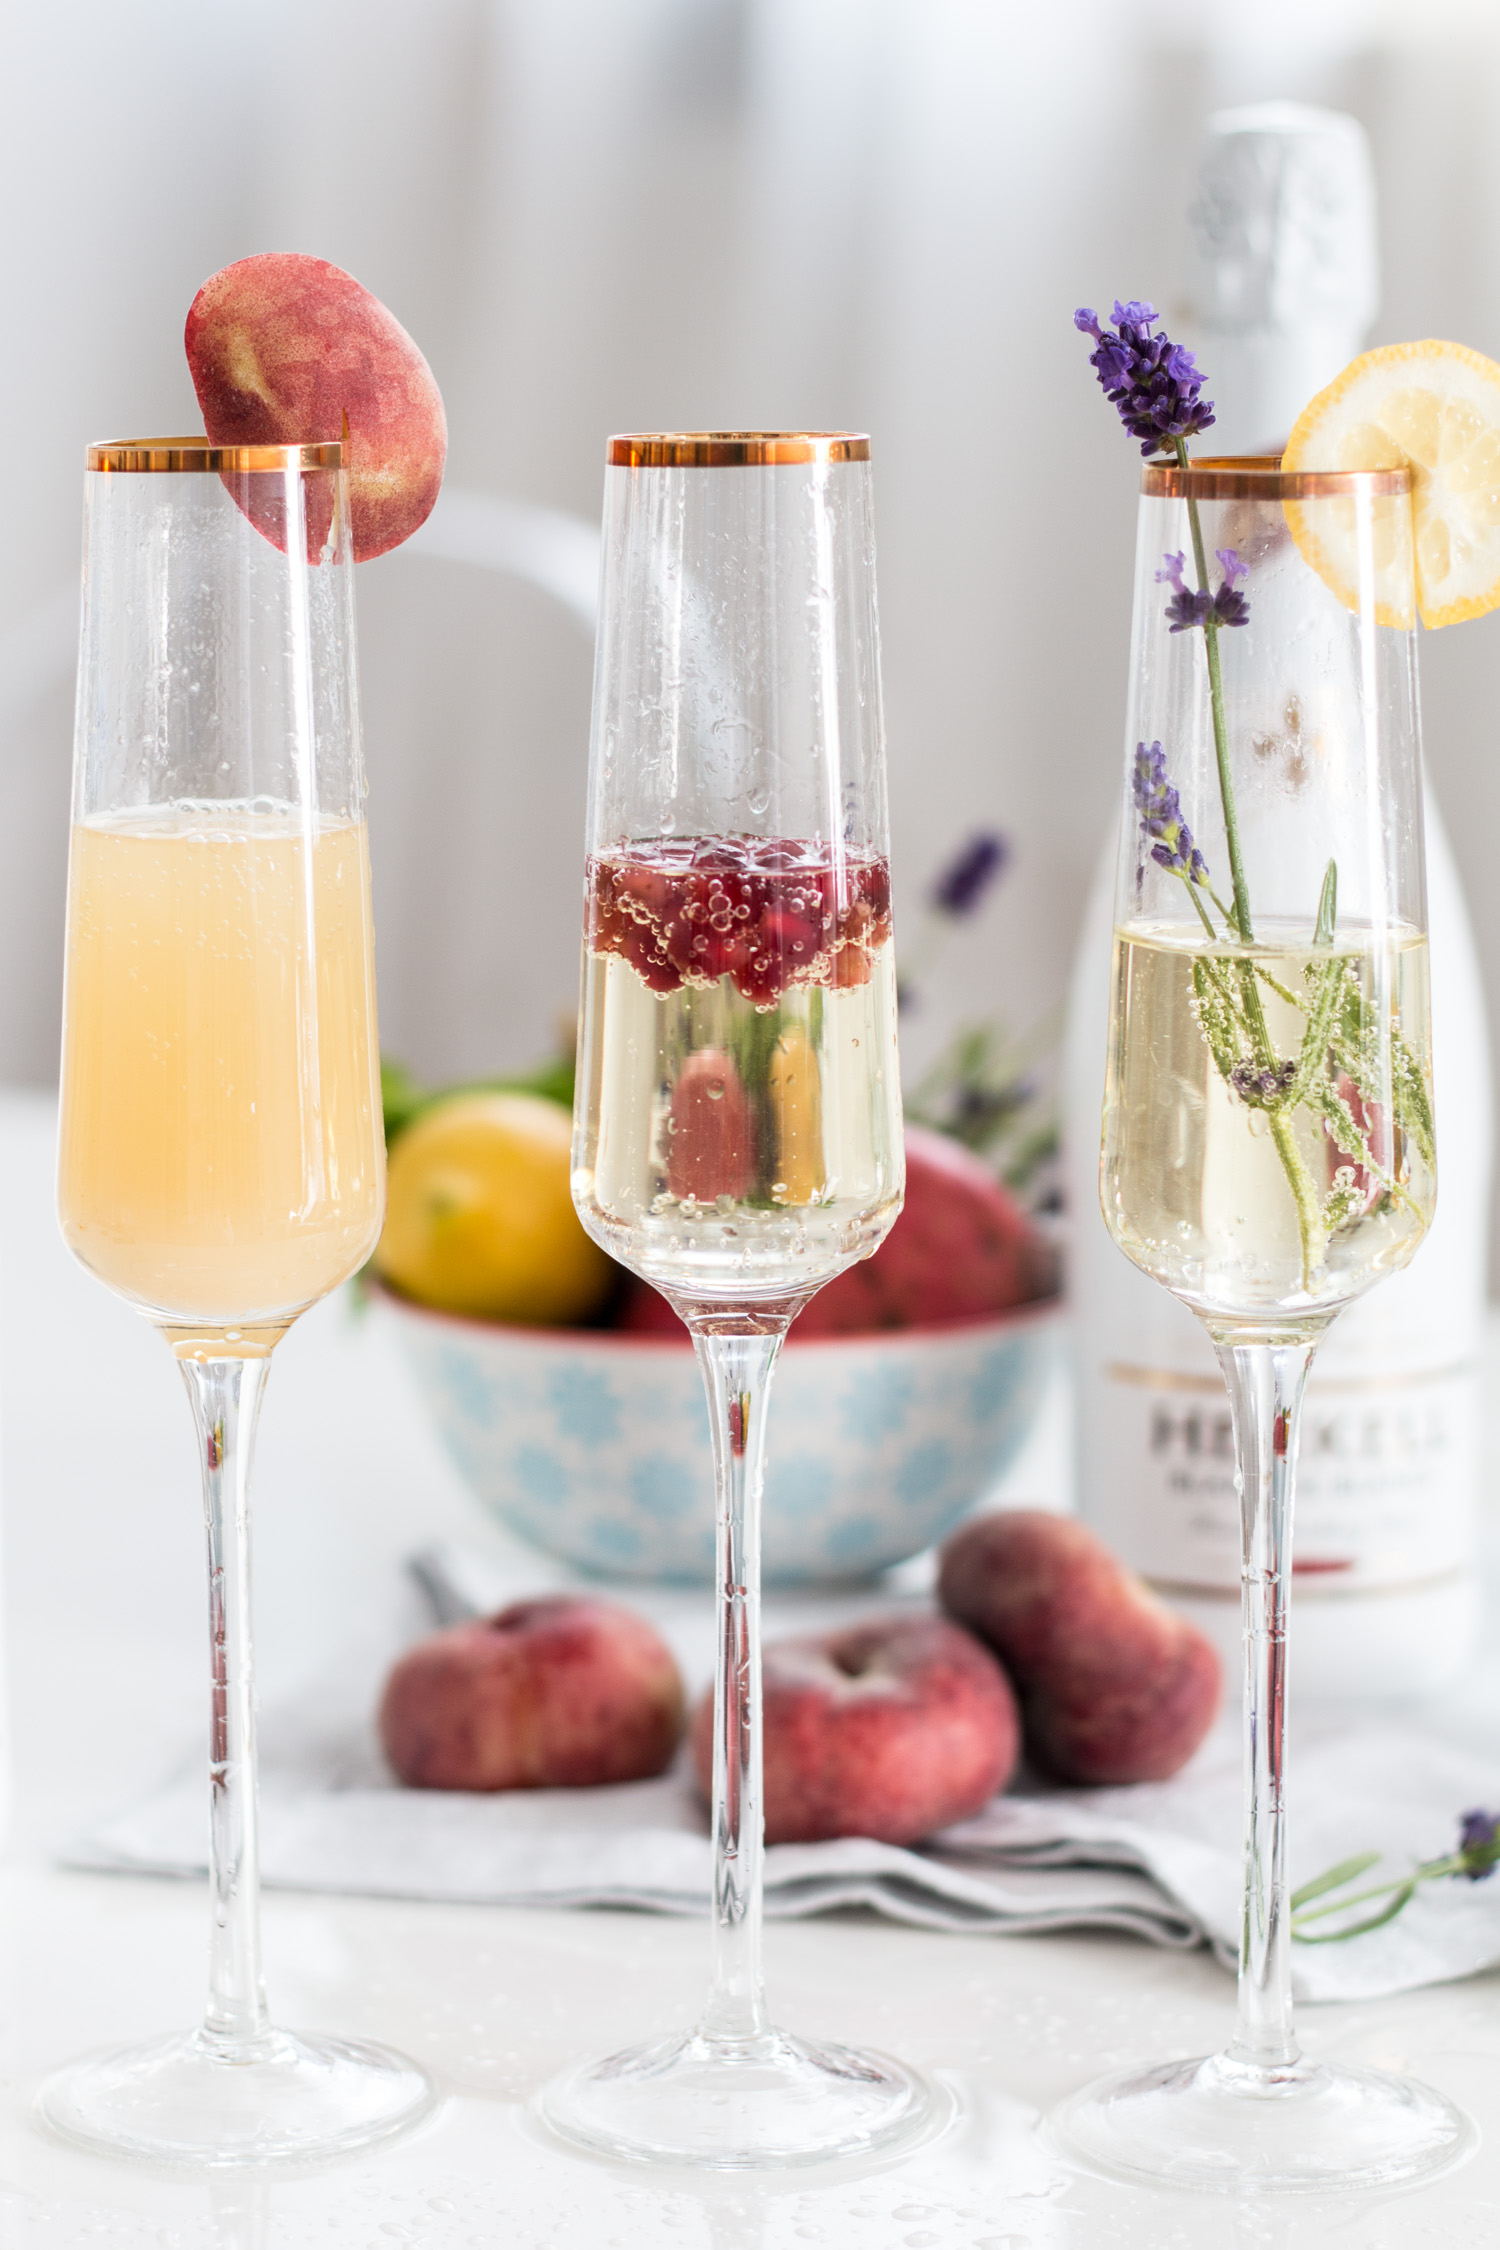 Henkell Blanc de Blancs Secco Bar   The Daily Dose